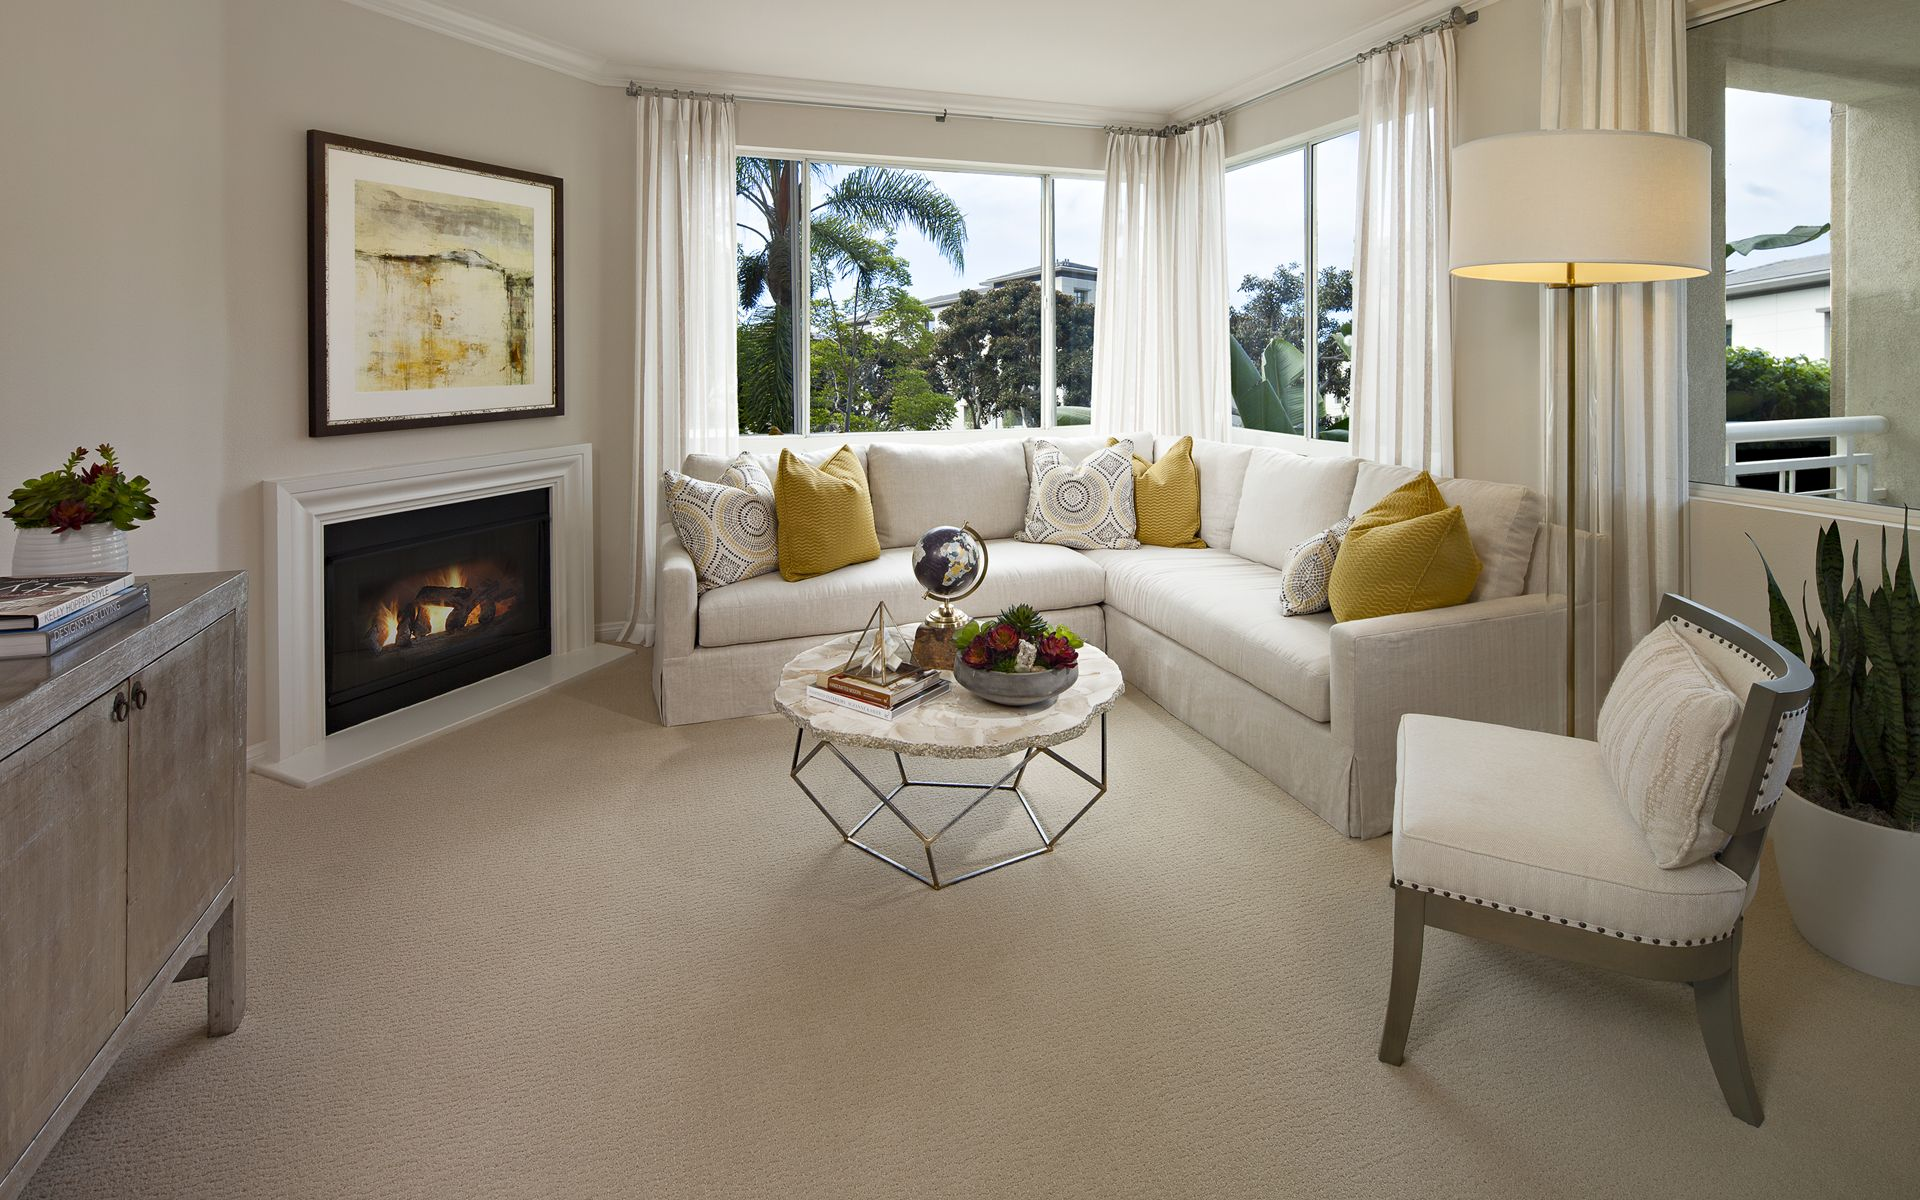 Interior view of living room at The Colony at Fashion Island Apartment Homes in Newport Beach, CA.